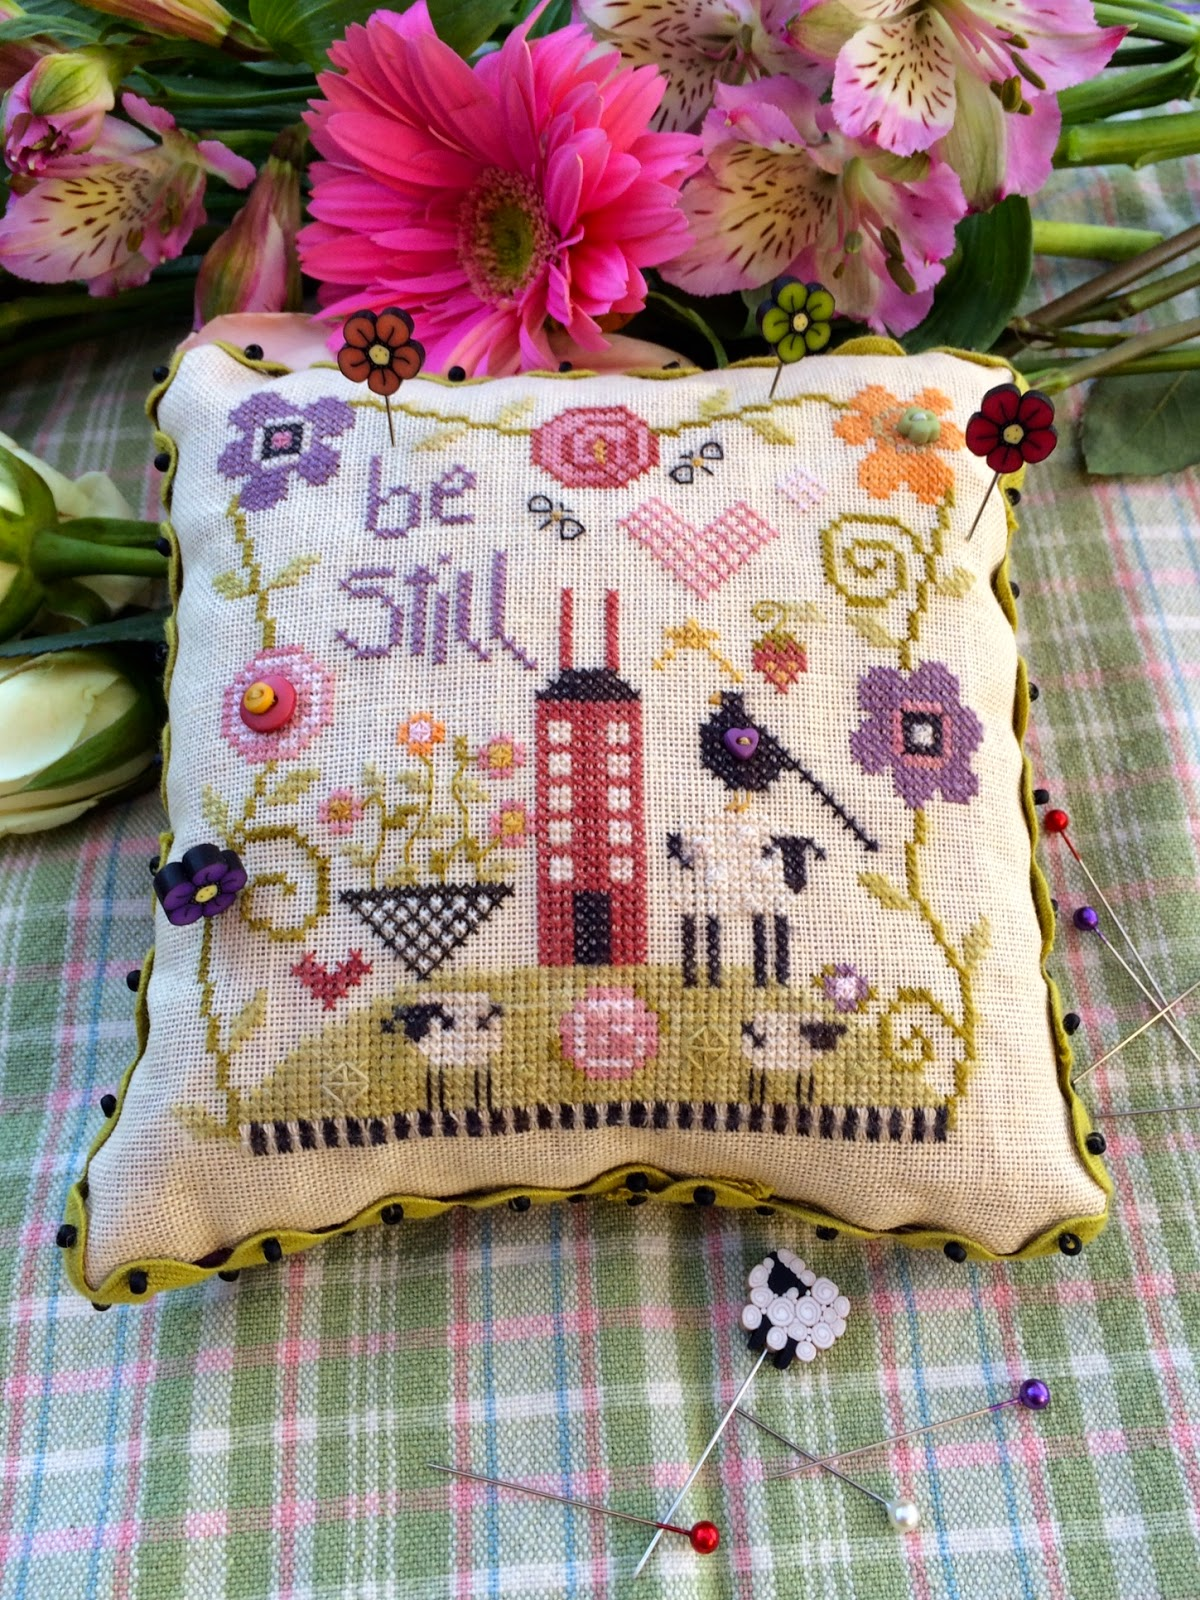 Shepherd's Bush - Be Still - Cross Stitch Kit